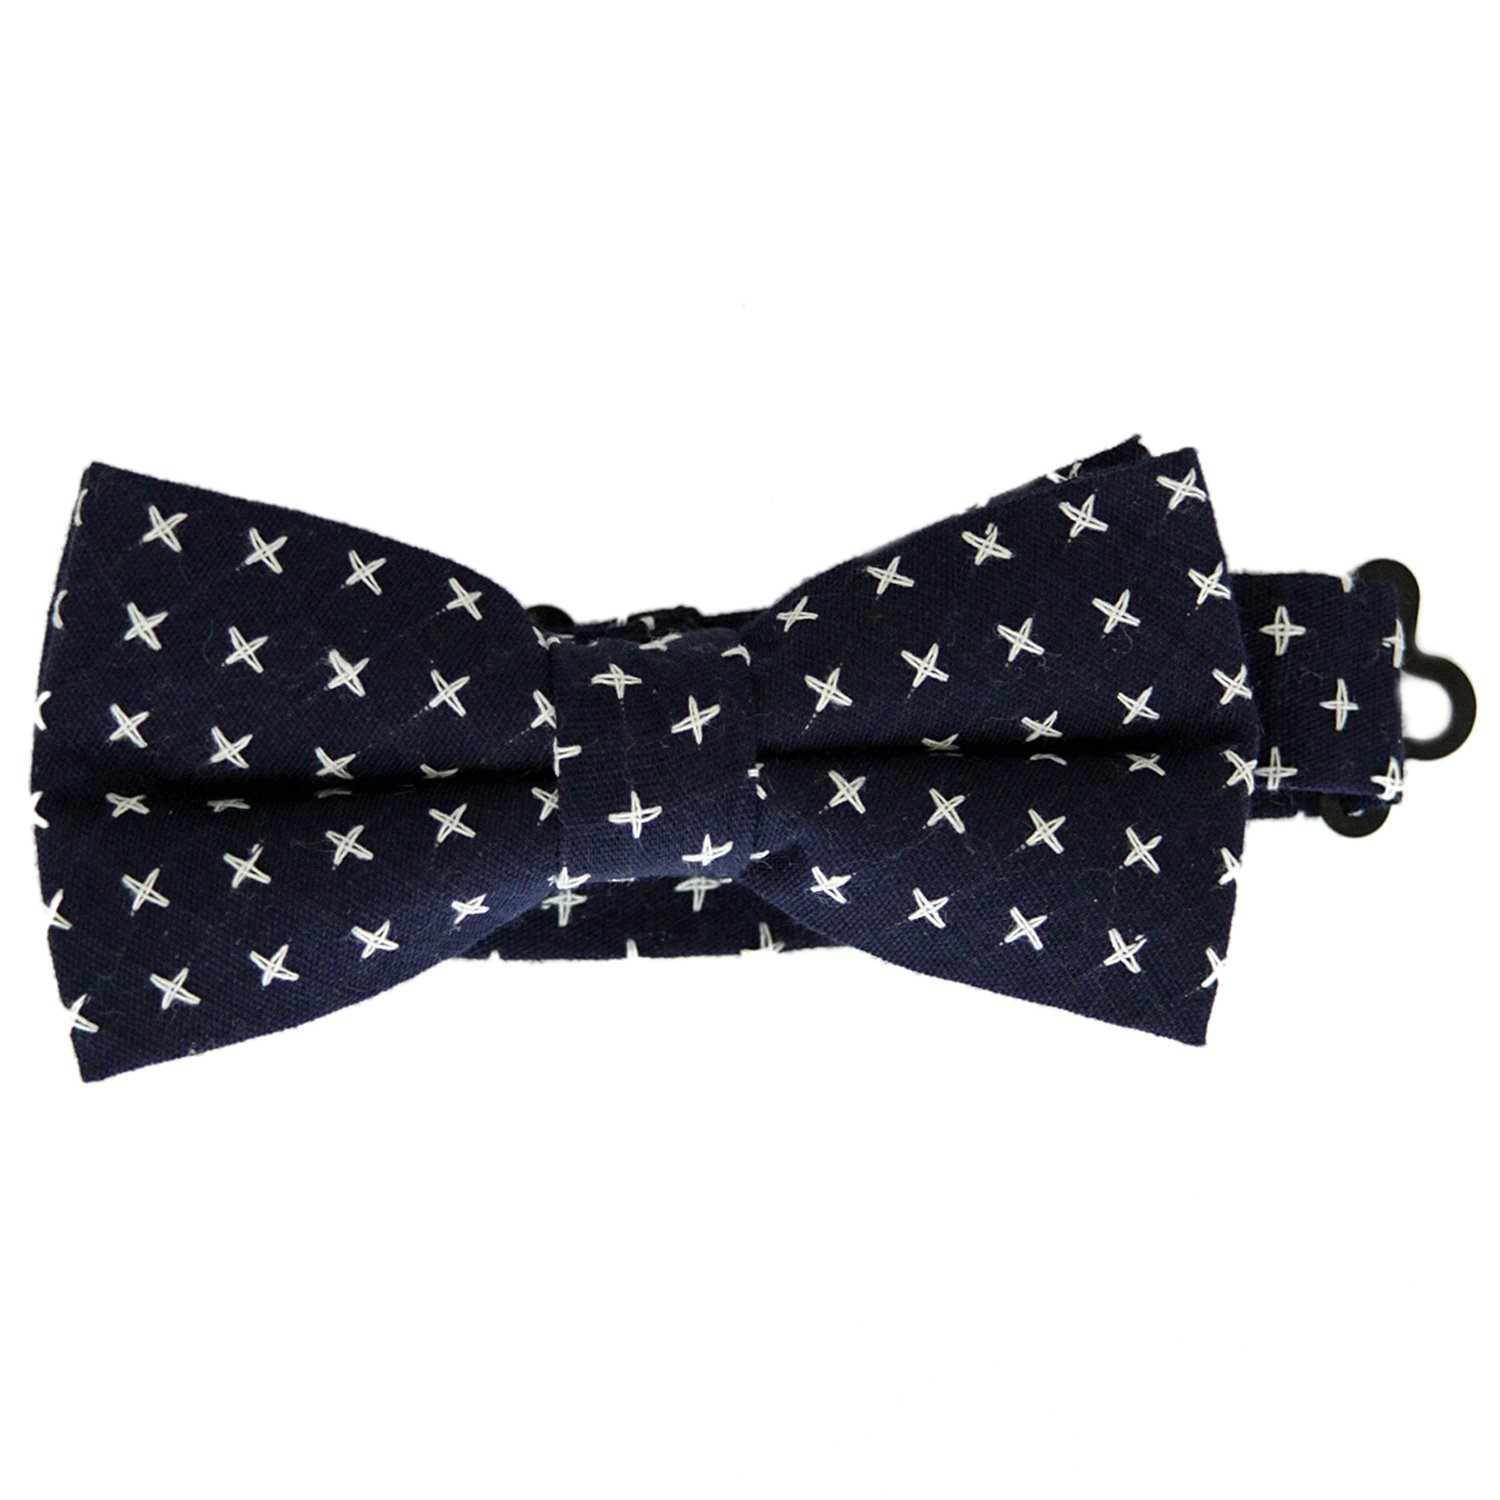 Navy Crosses Bow Tie